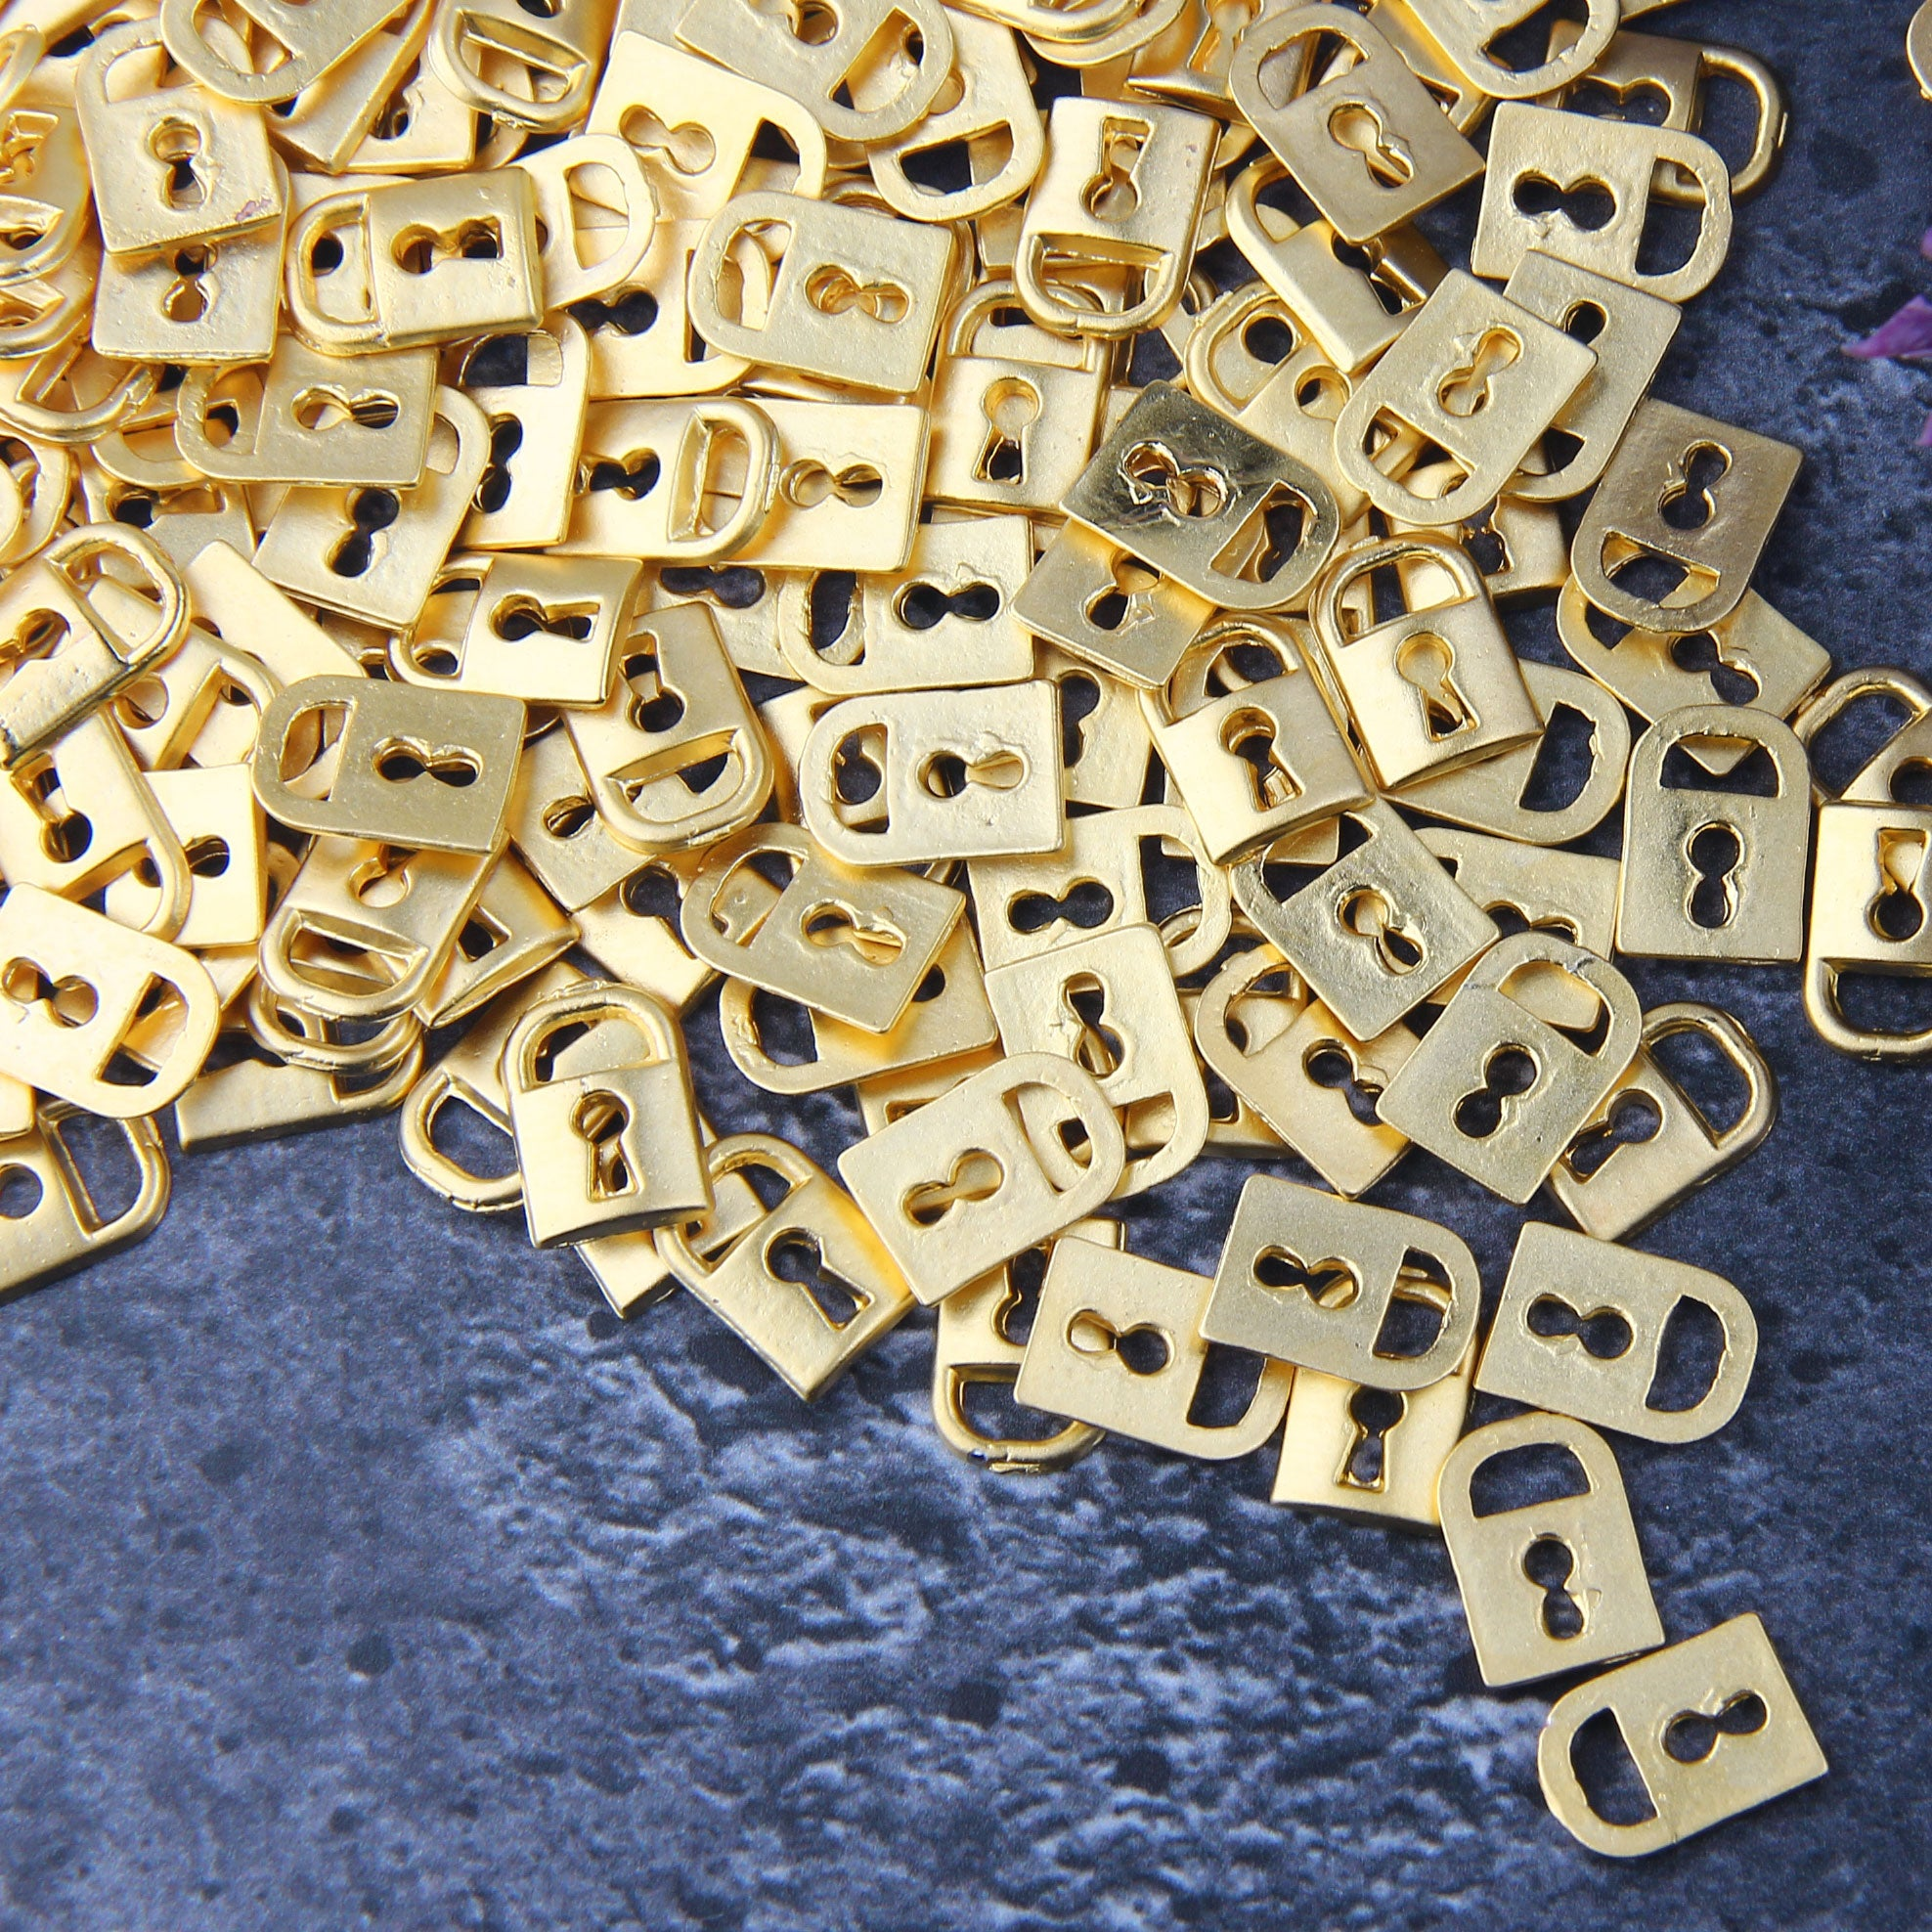 Gold Plated Lock Charms, Mini Lock Charms, Lock Zipper Pulls, Padlock Charms, 10 pieces // GCh-347